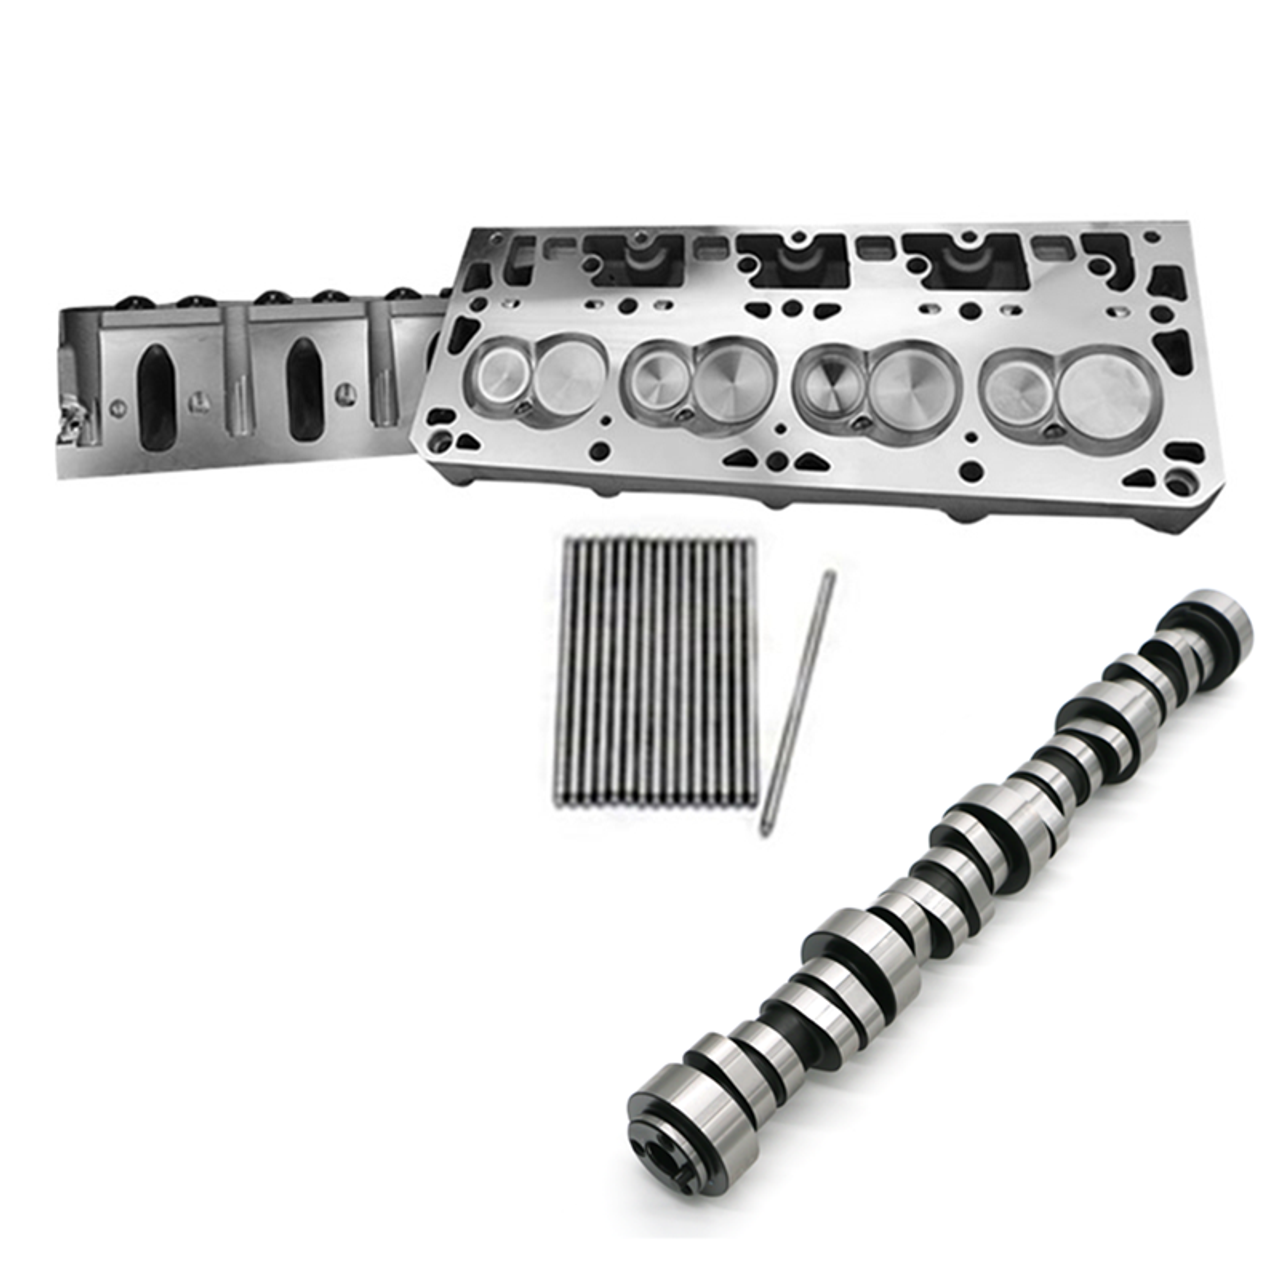 PRC LS1/LS2 15 Degree 220cc CNC Cathedral Heads & TSP Cam Package | Outright